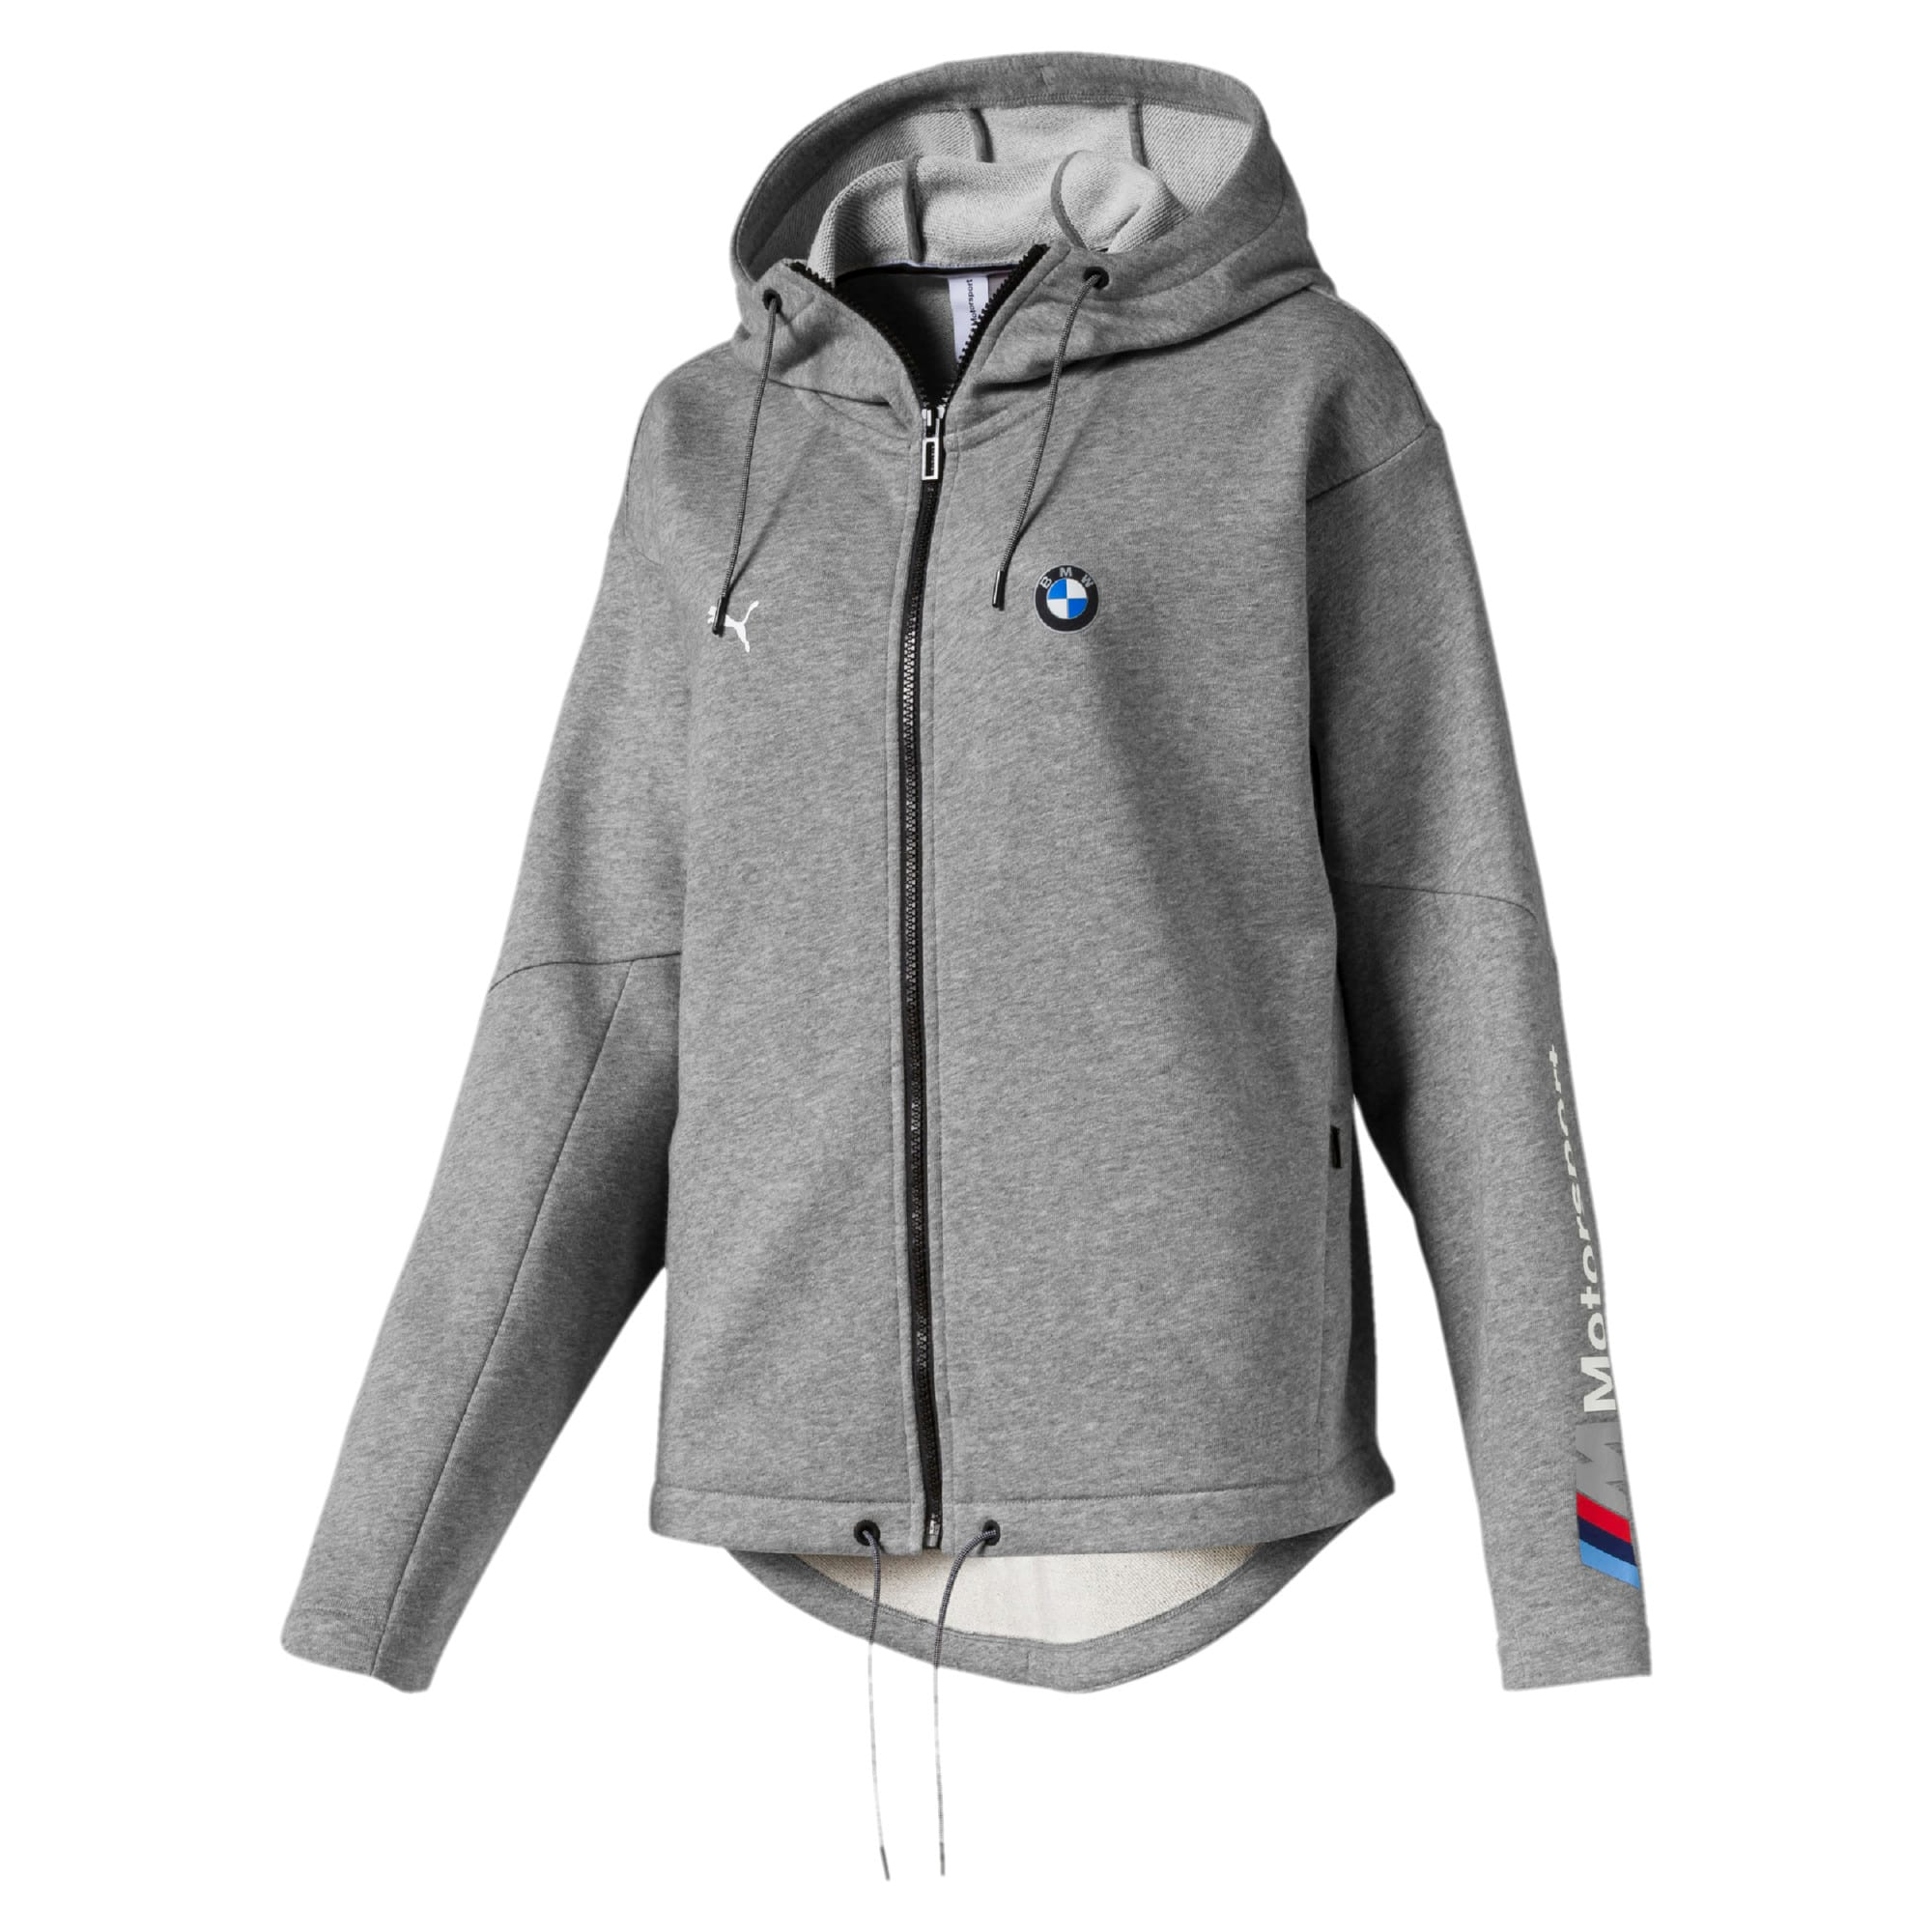 Thumbnail 1 of BMW M Motorsport Women's Sweat Jacket, Medium Gray Heather, medium